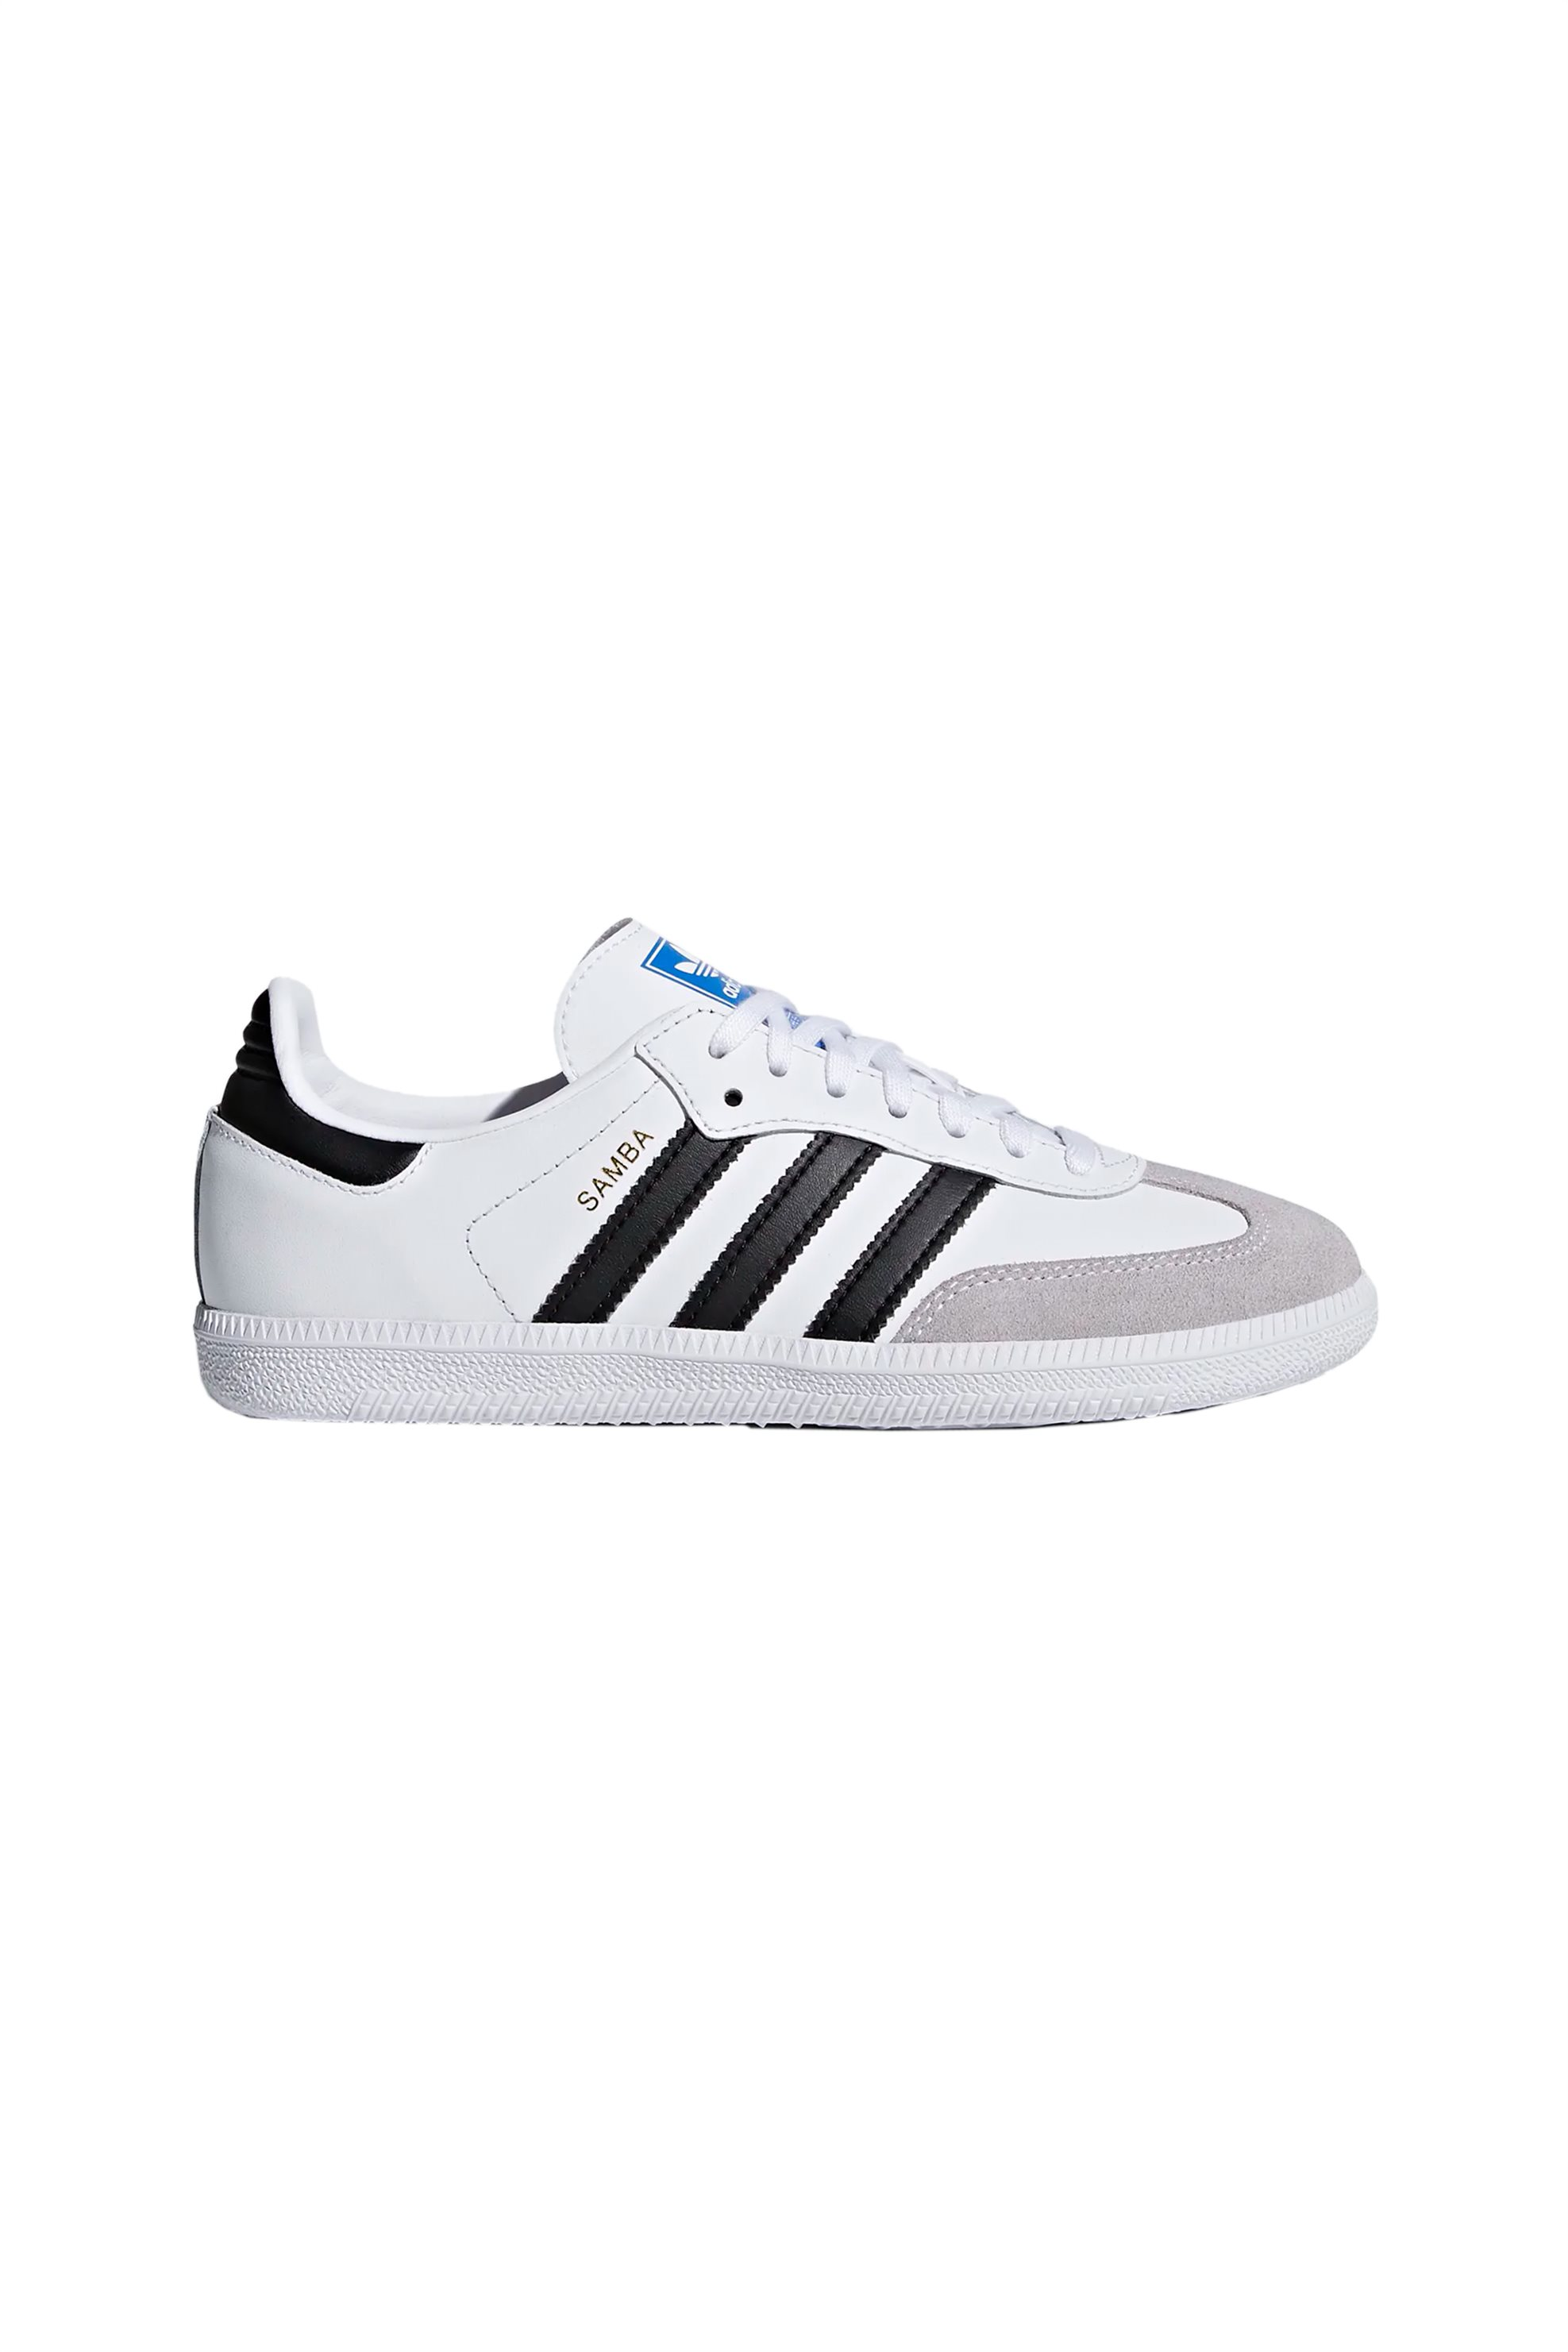 9faf513e28d Notos Adidas παιδικά sneakers Samba OG – BB6976 – Λευκό